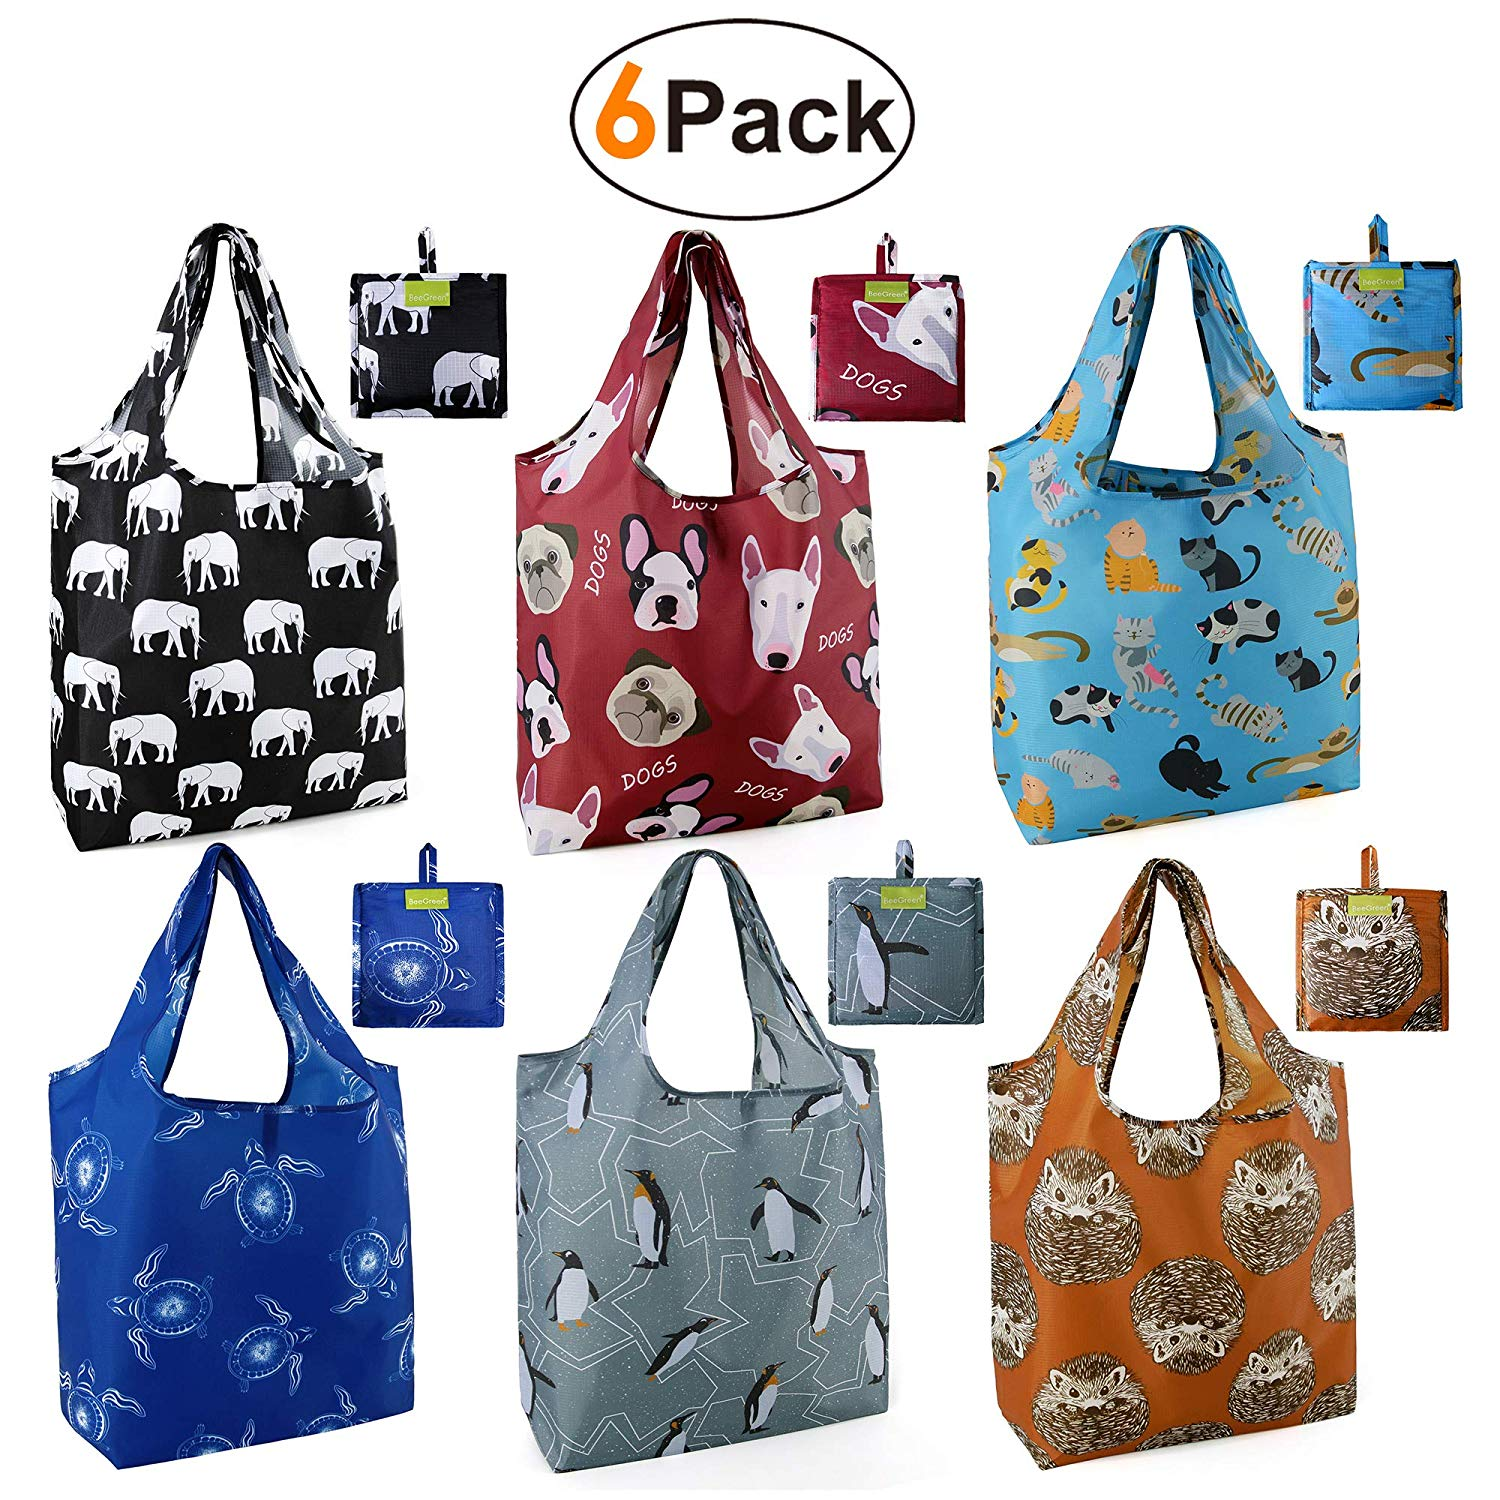 6 pack reusable shopping bags with turtle